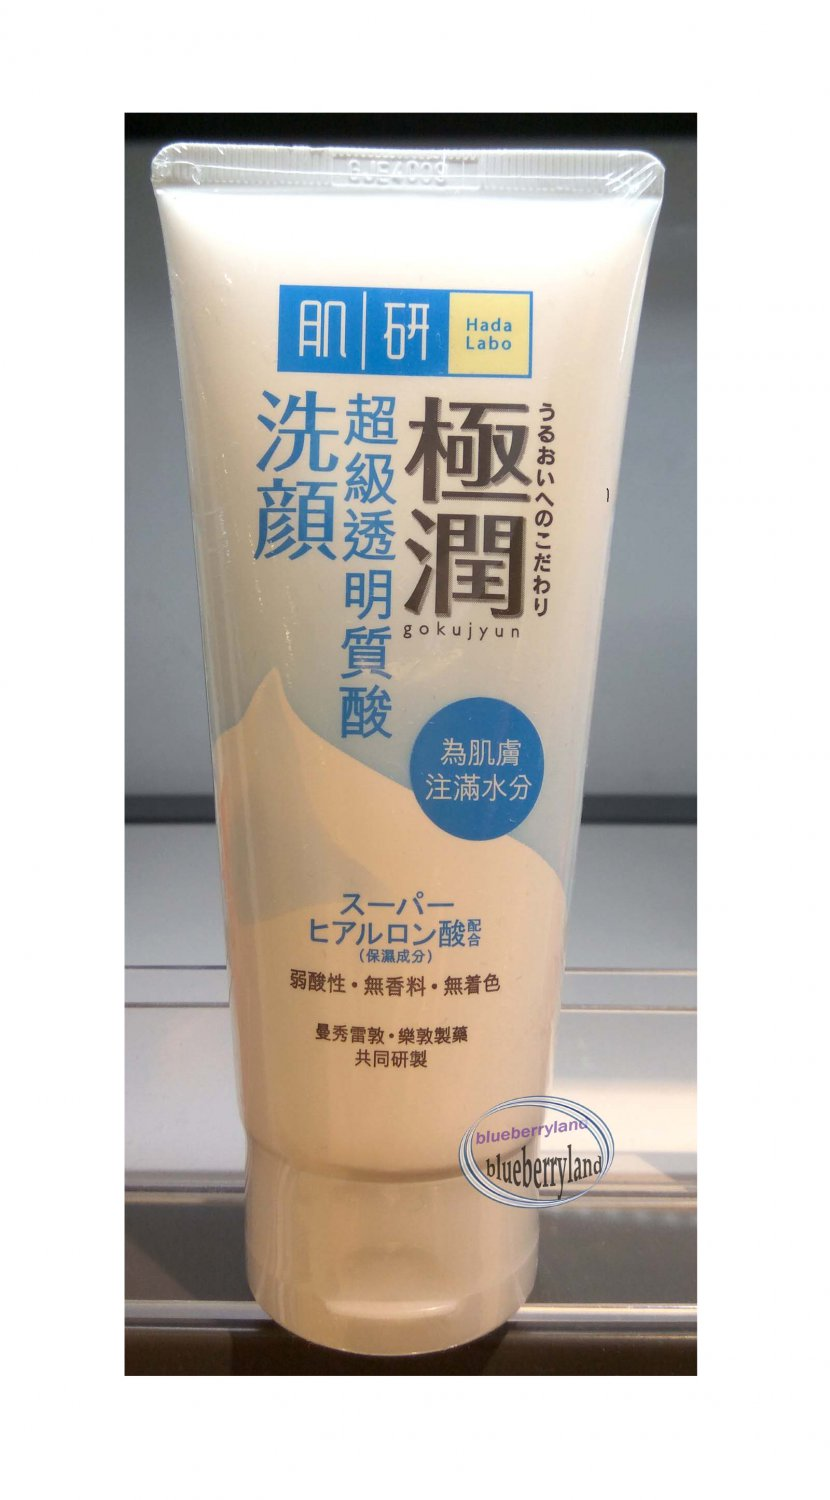 Japan Hada Labo Gokujyun Super Hyaluronic Acid Face Wash Foam 100g